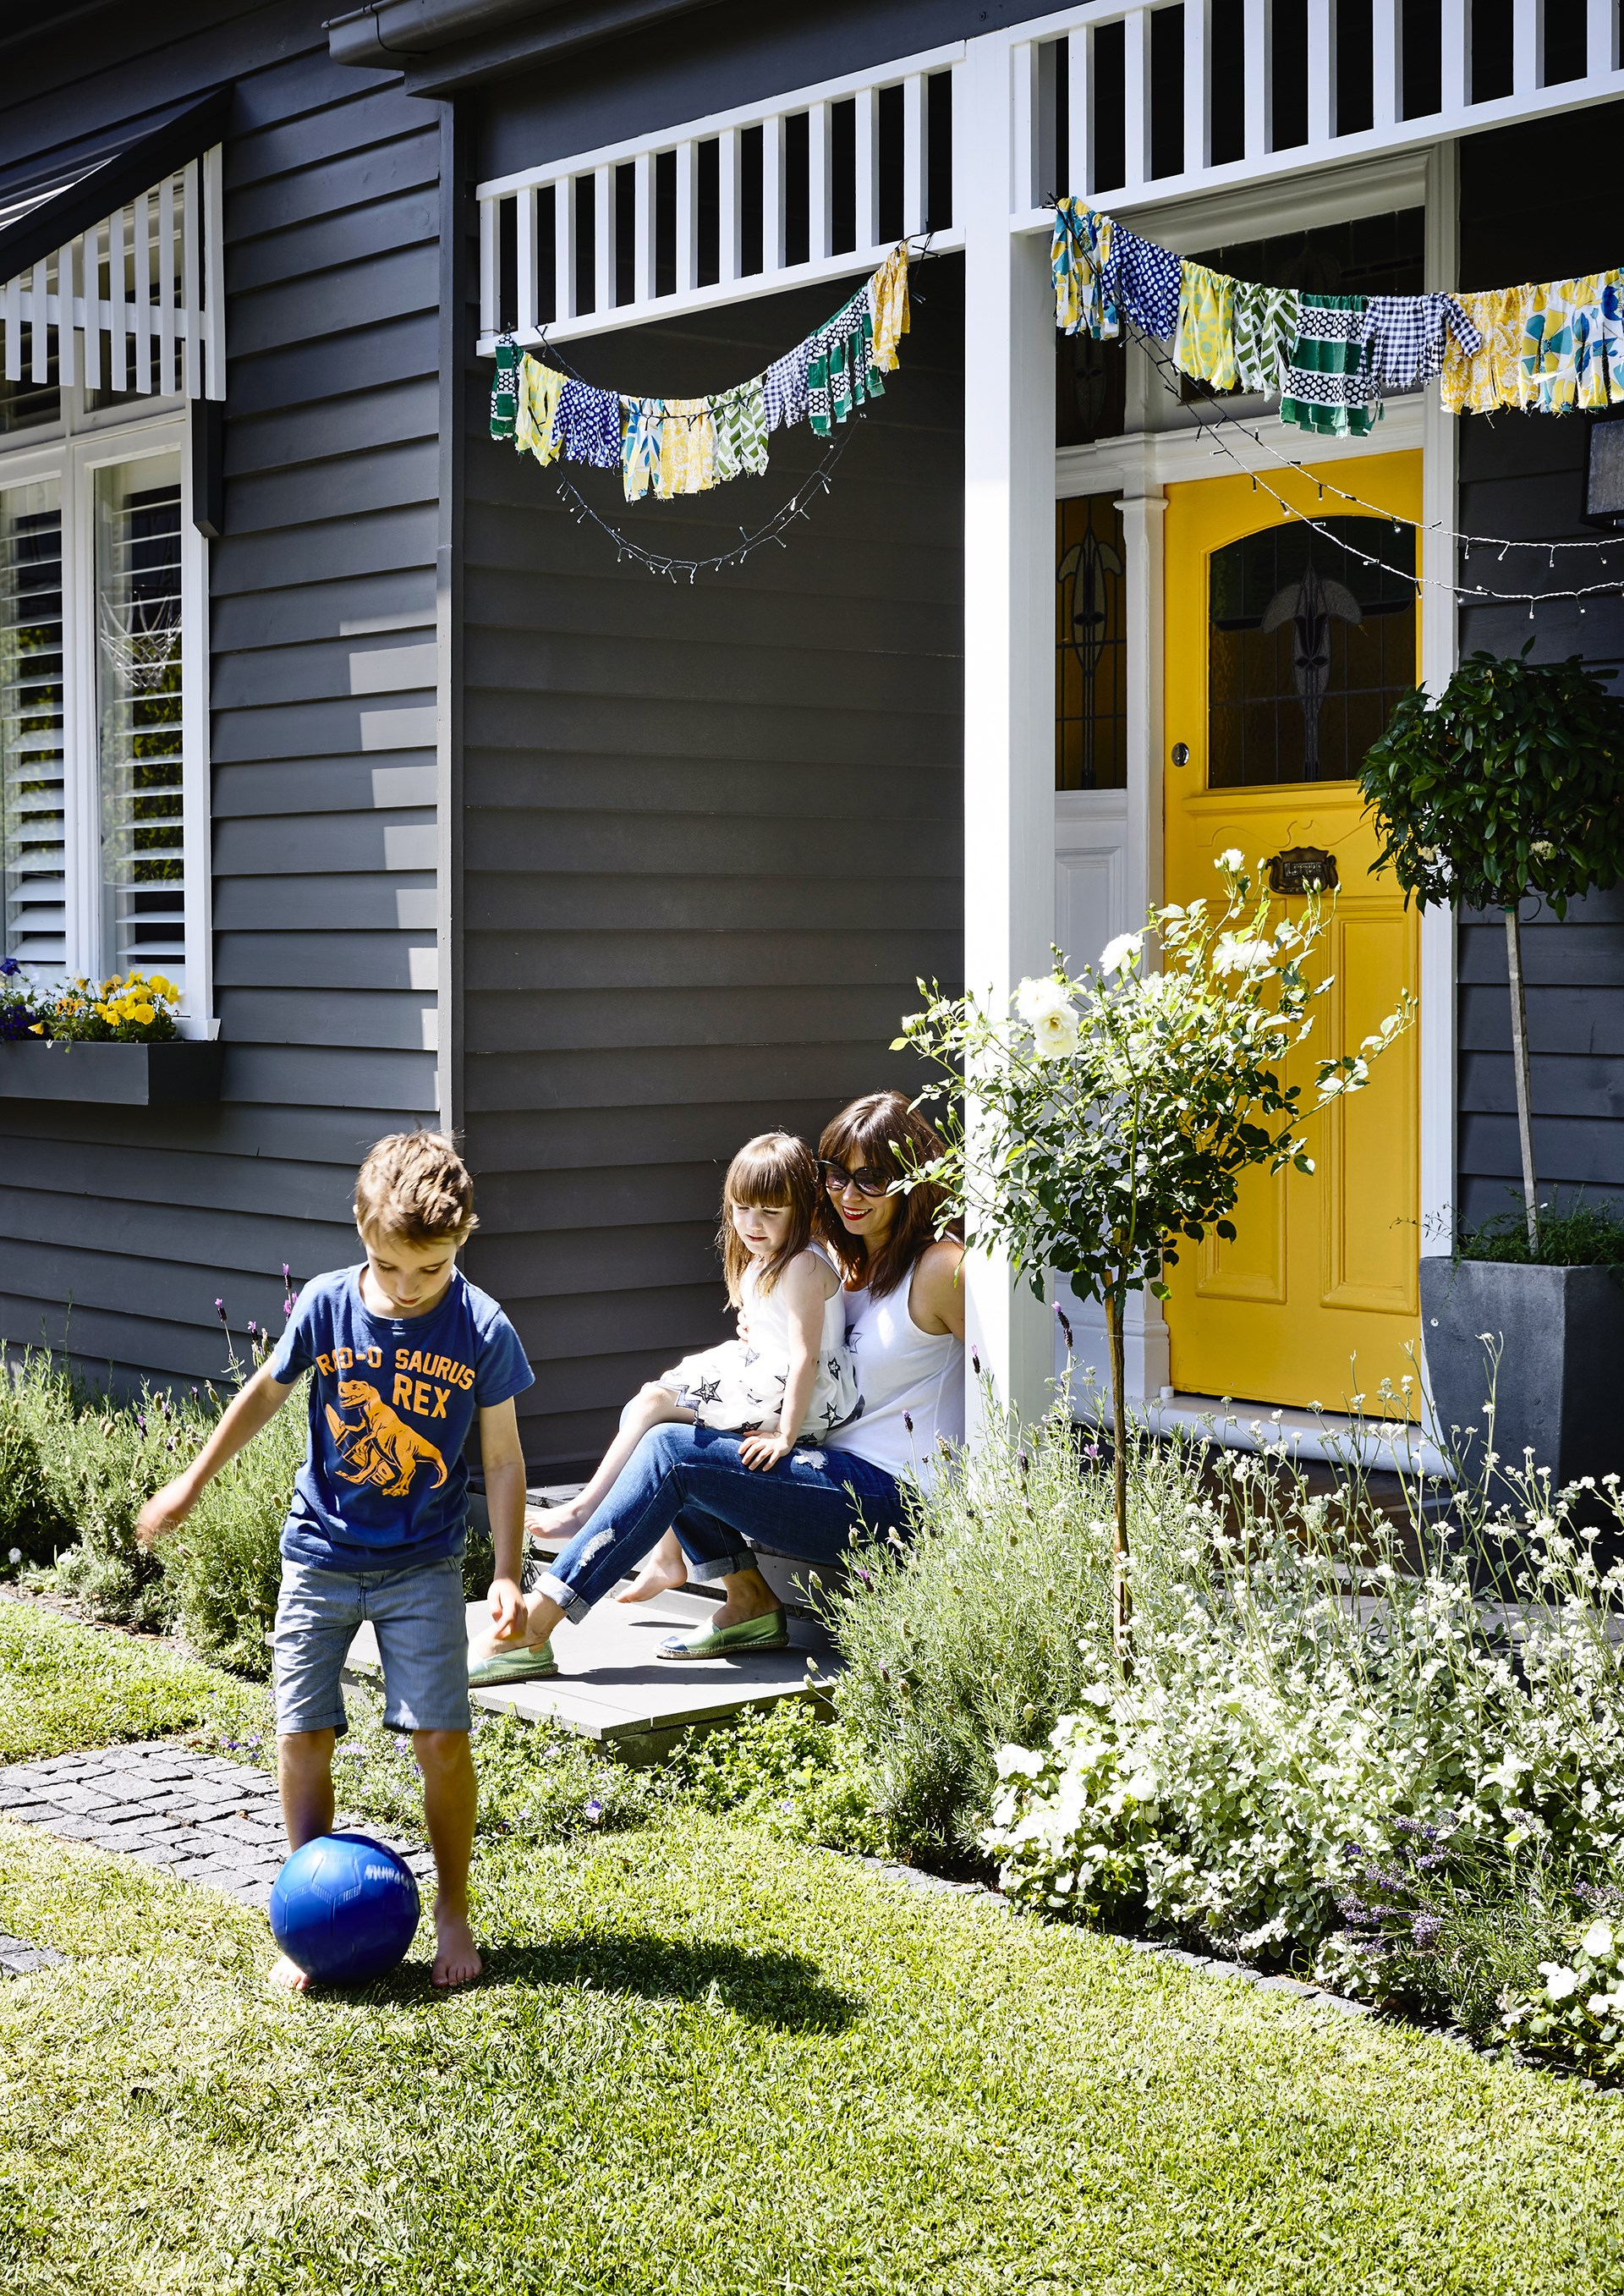 Marissa chose the bright yellow shade for the front door to draw the eye and add a sense of fun to their home's façade. The front garden's feature plants include 'Iceberg' rose and Licorice plant (*Helichrysum petiolare*).